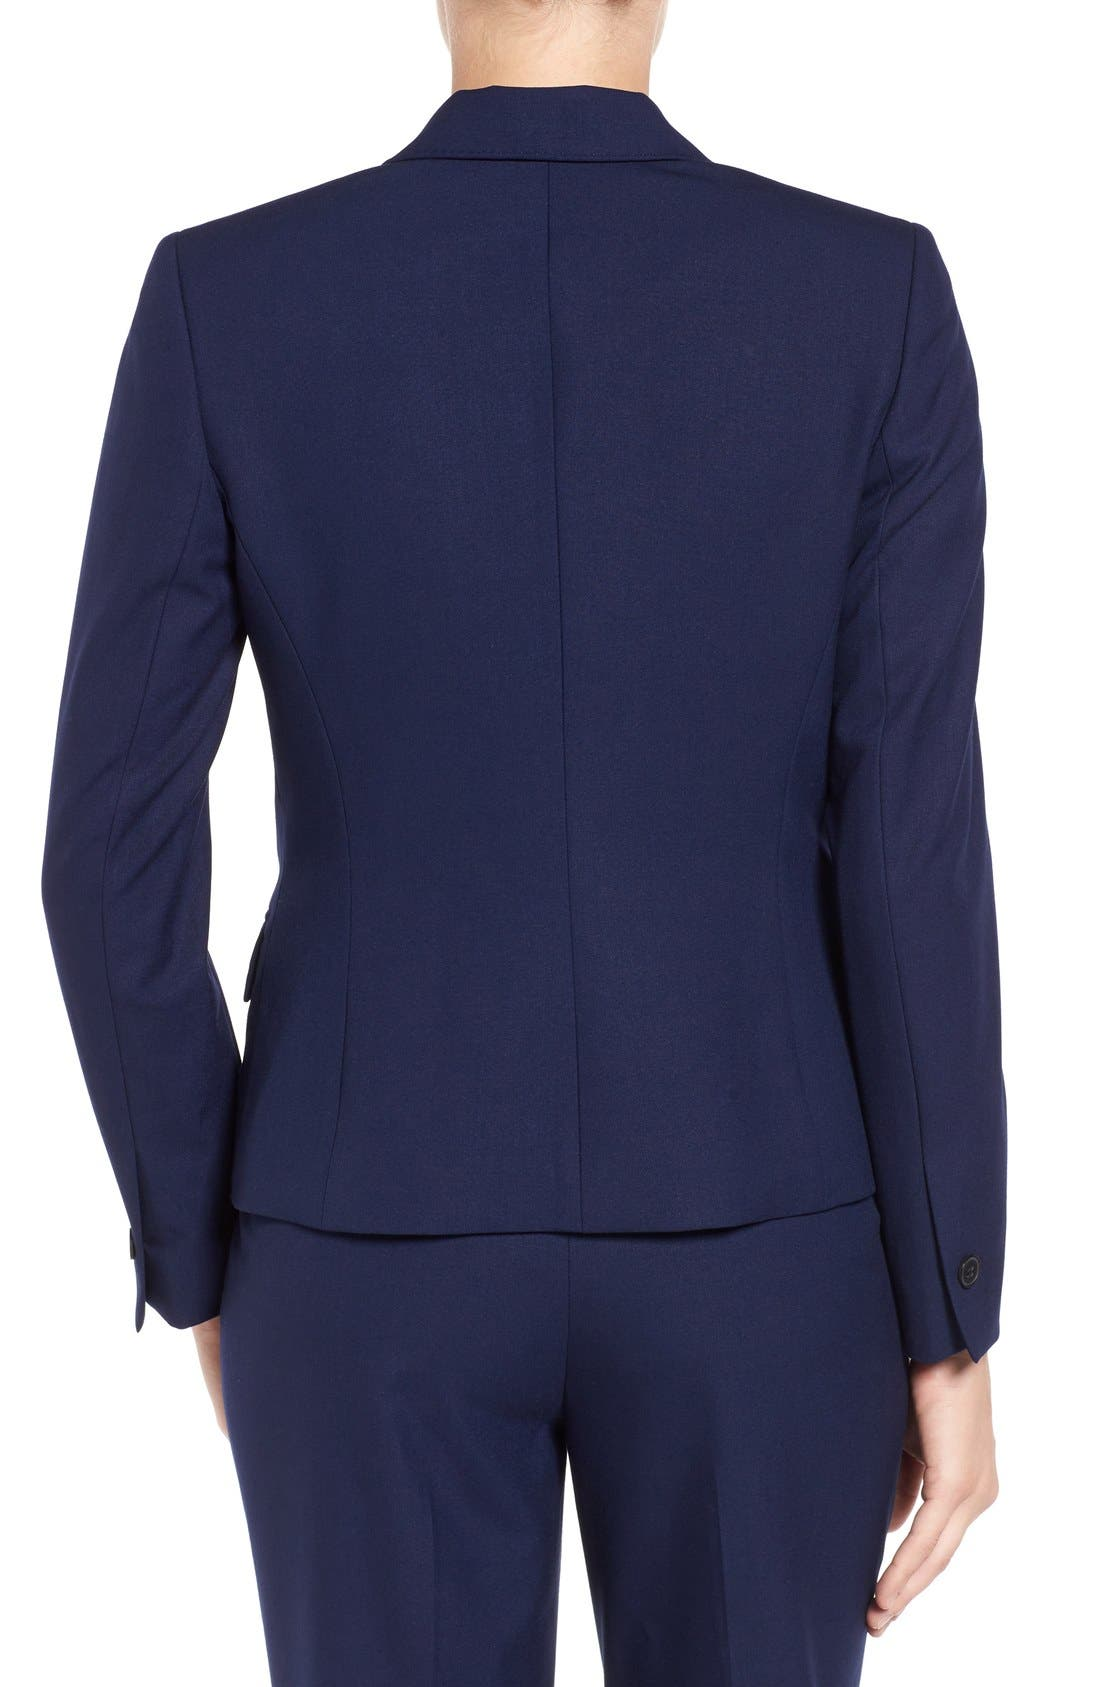 One-Button Suit Jacket,                             Alternate thumbnail 4, color,                             NAVY